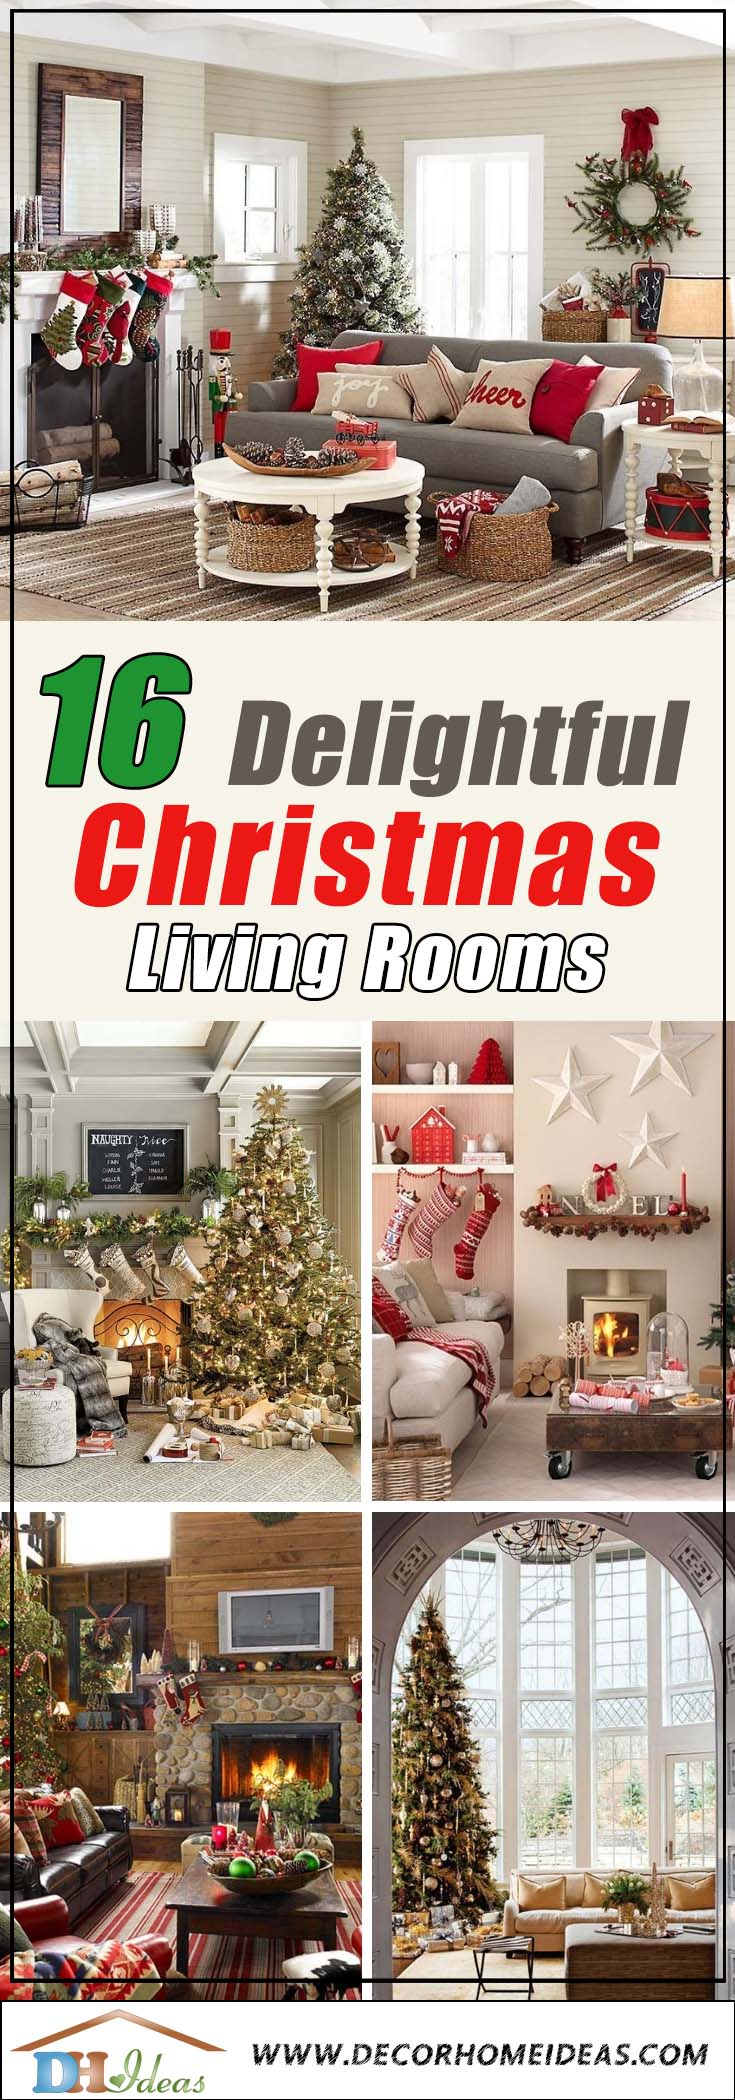 Christmas Living Rooms #Christmasdecor #Christmas #livingroom #decorhomeideas